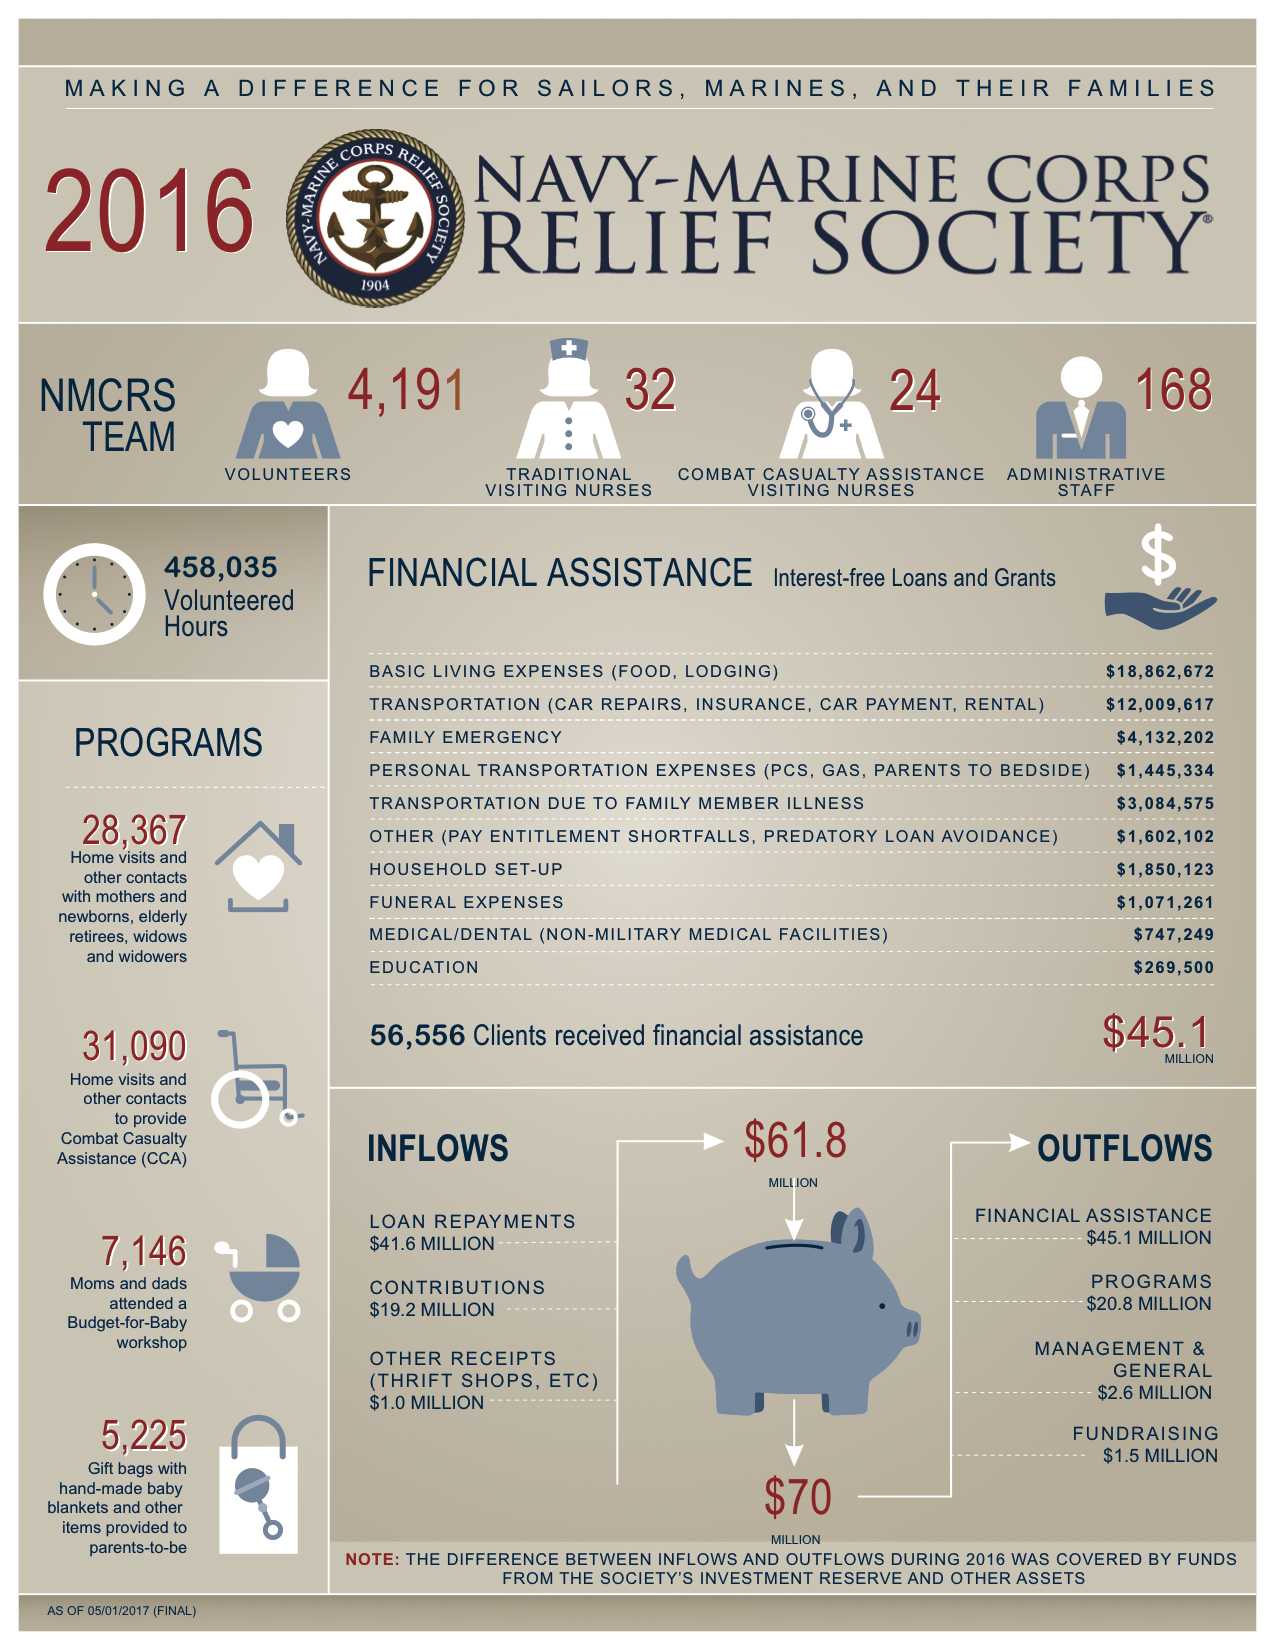 2016 Navy-Marine Corps Relief Society Year in Review